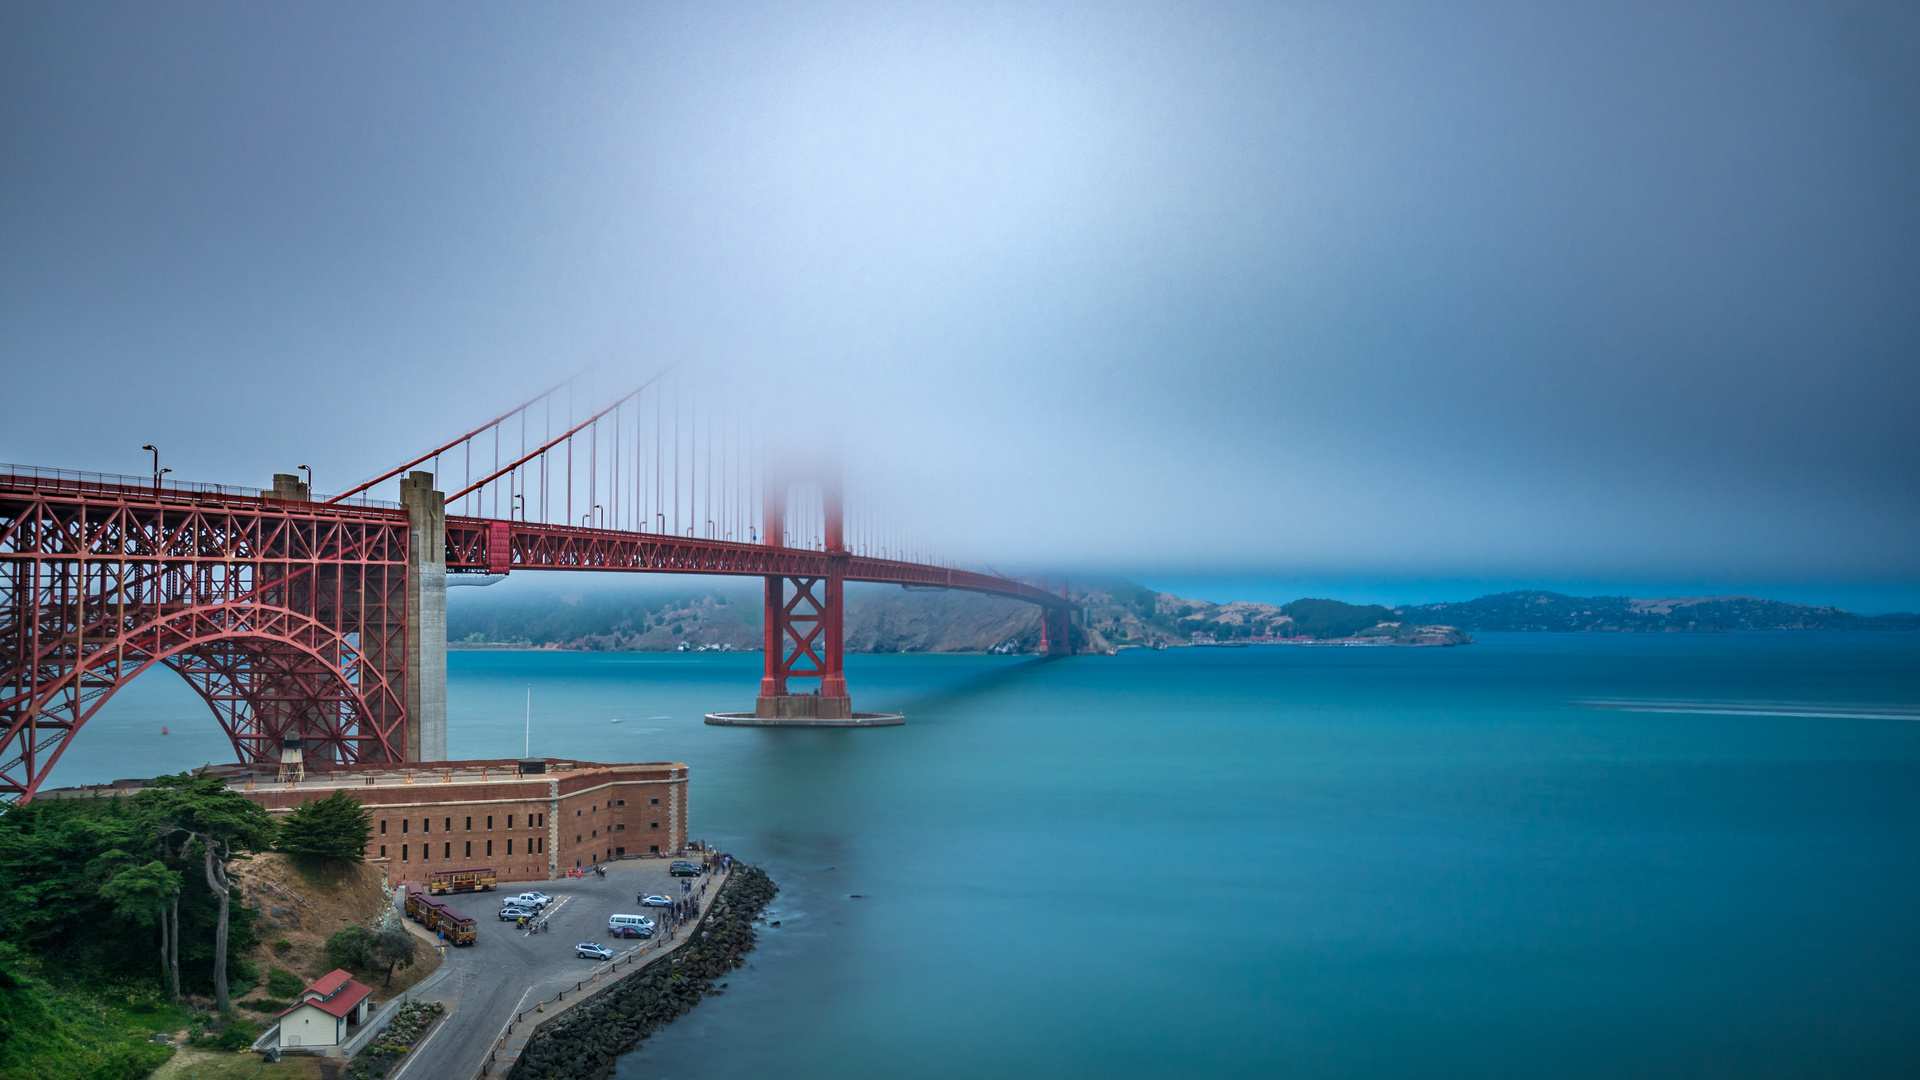 golden gate bridge foto bild city nikon world bilder. Black Bedroom Furniture Sets. Home Design Ideas